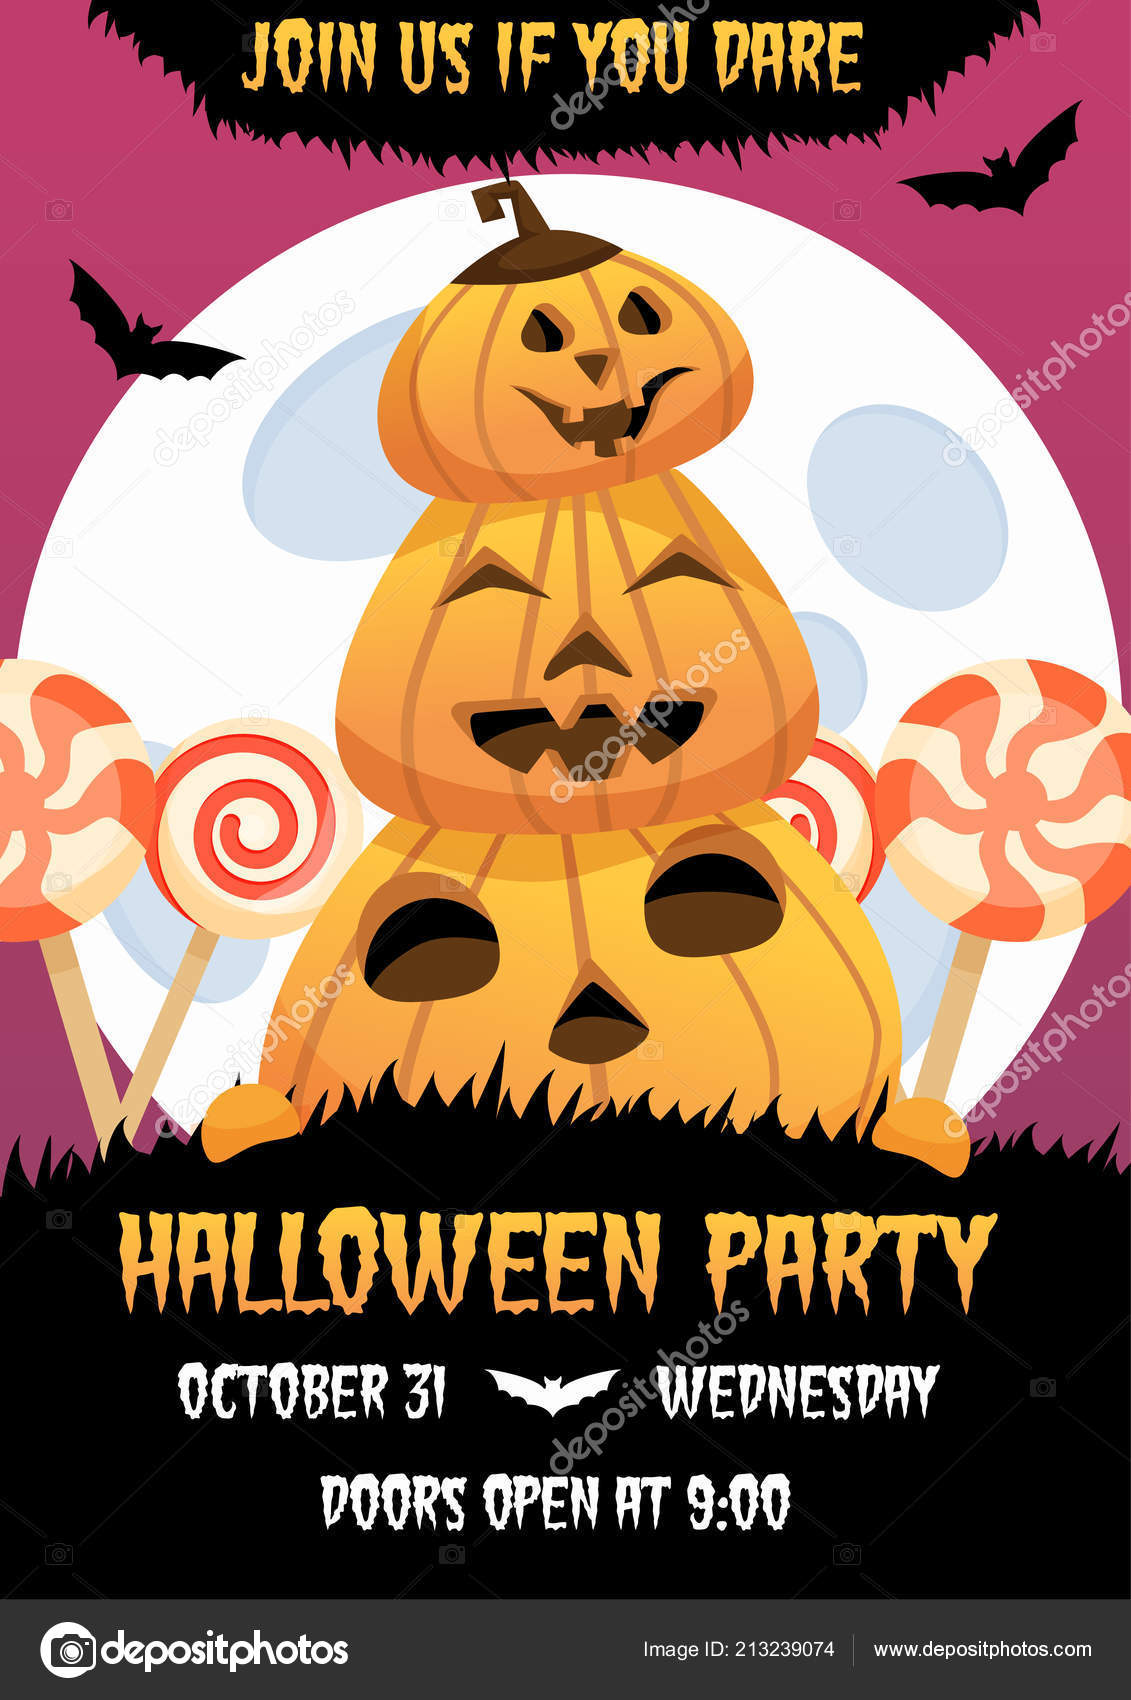 Happy Halloween Invitation Poster With Smiling Pumpkin And Candies On Background Greeting Card Scary Party Flyer Spooky Banner For Celebrating Holiday